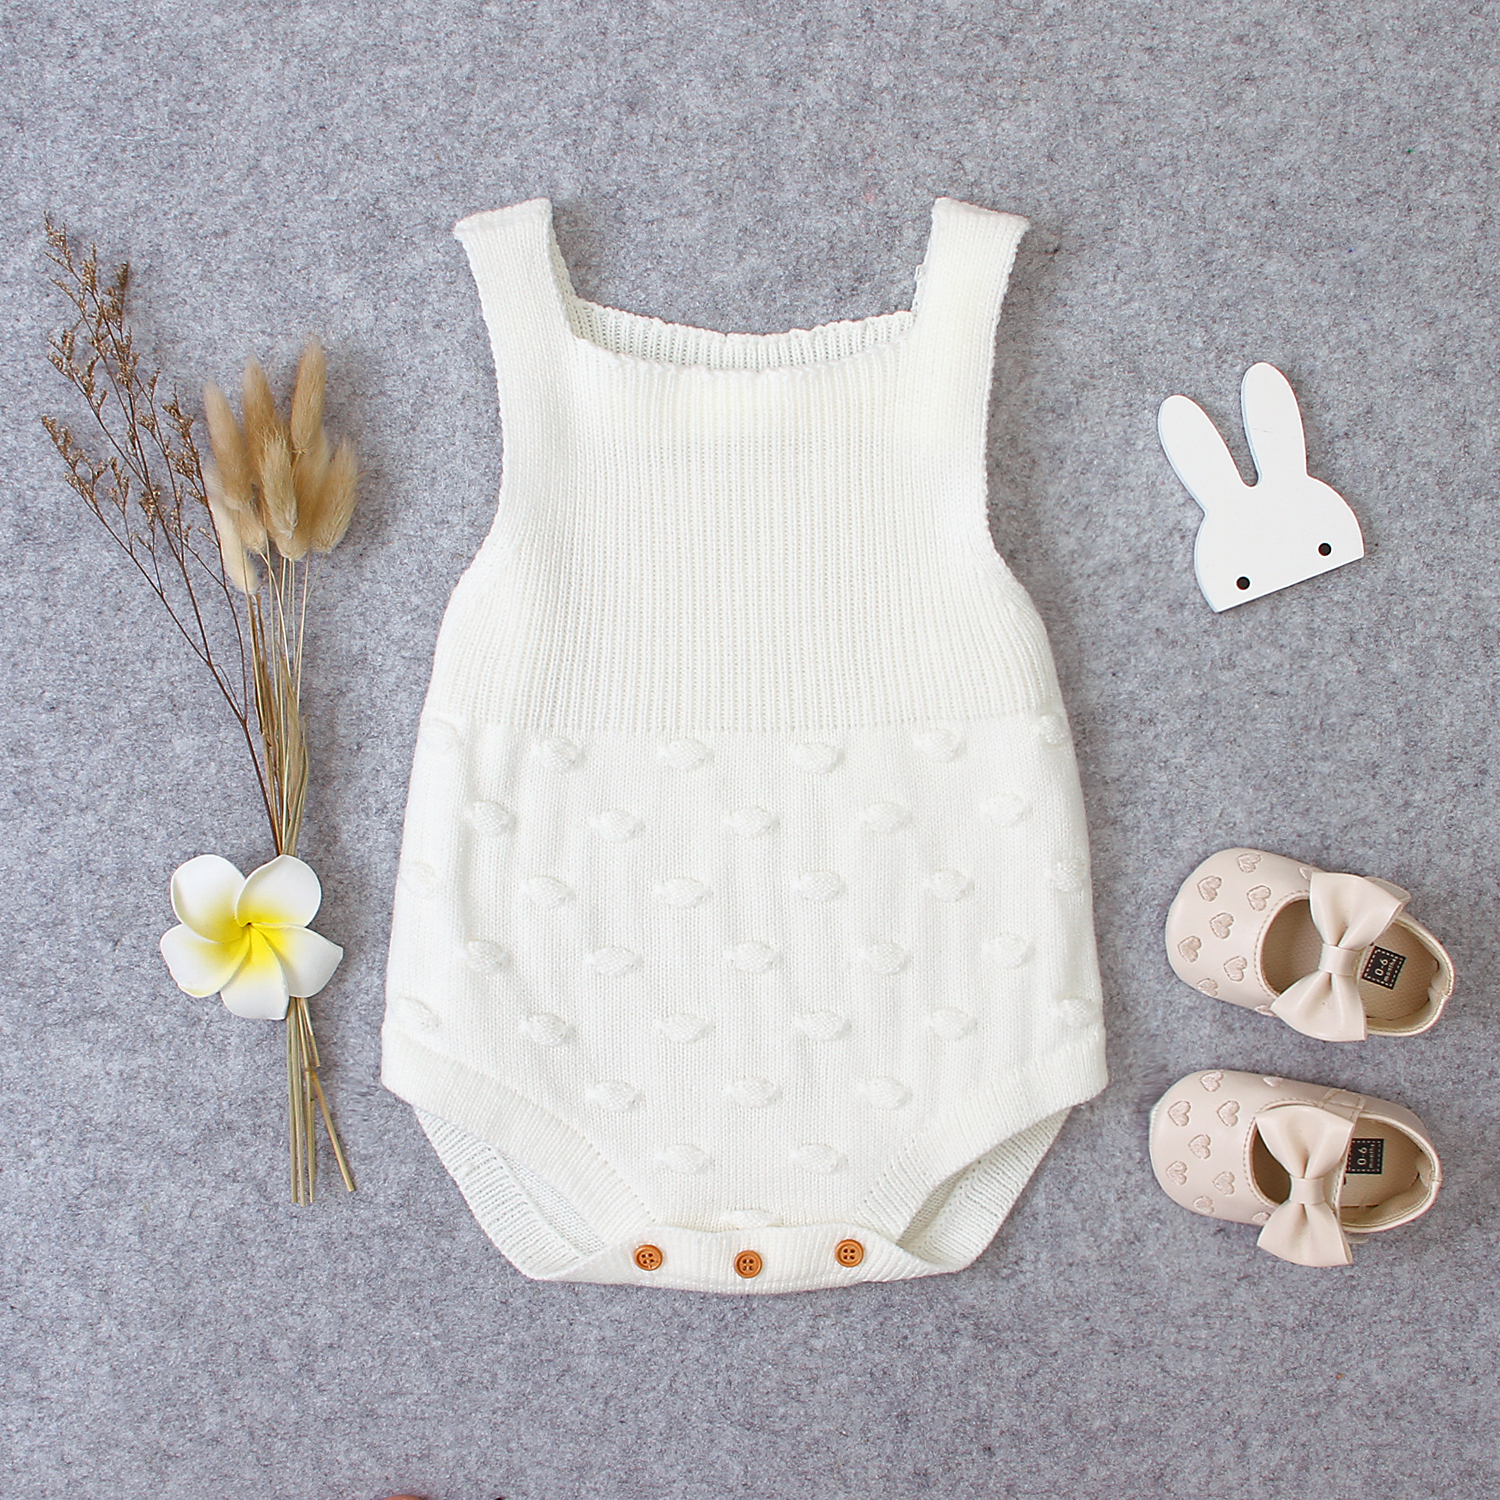 Newborn Baby Bodysuits One-Pieces Infant Boys Girls Sleeveless Jumpsuits Fashion Solid Knitted Toddler Body Tops Autumn Clothing